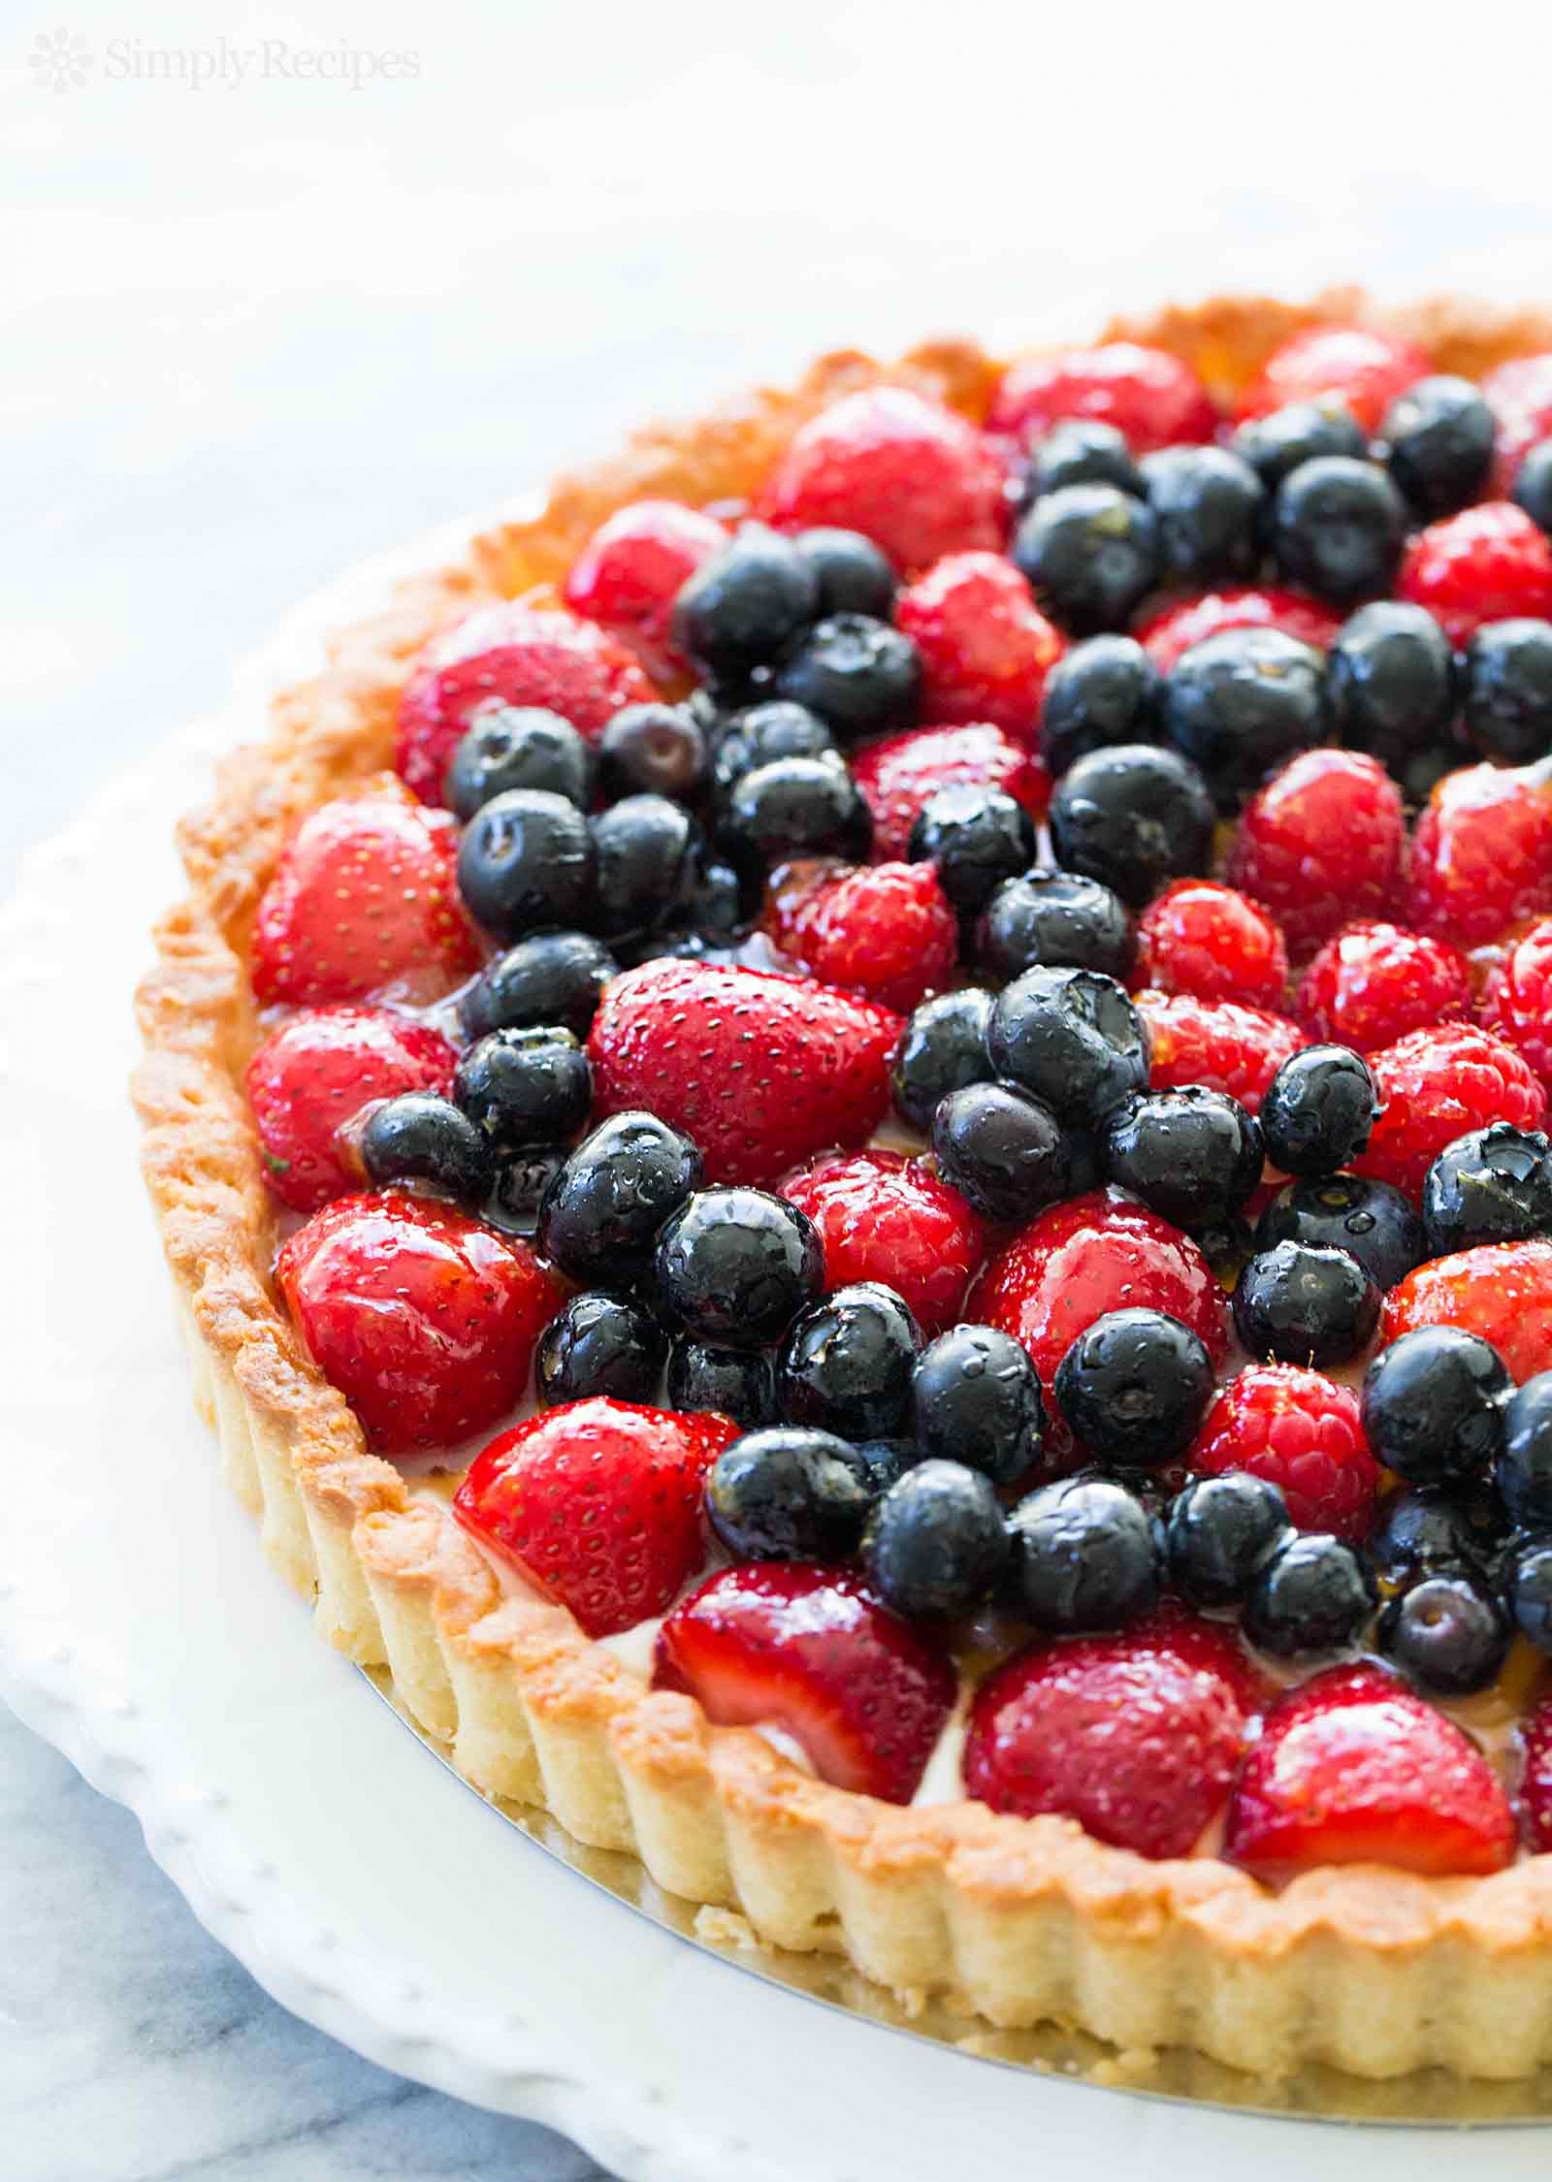 Berry Tart Recipe | SimplyRecipes.com